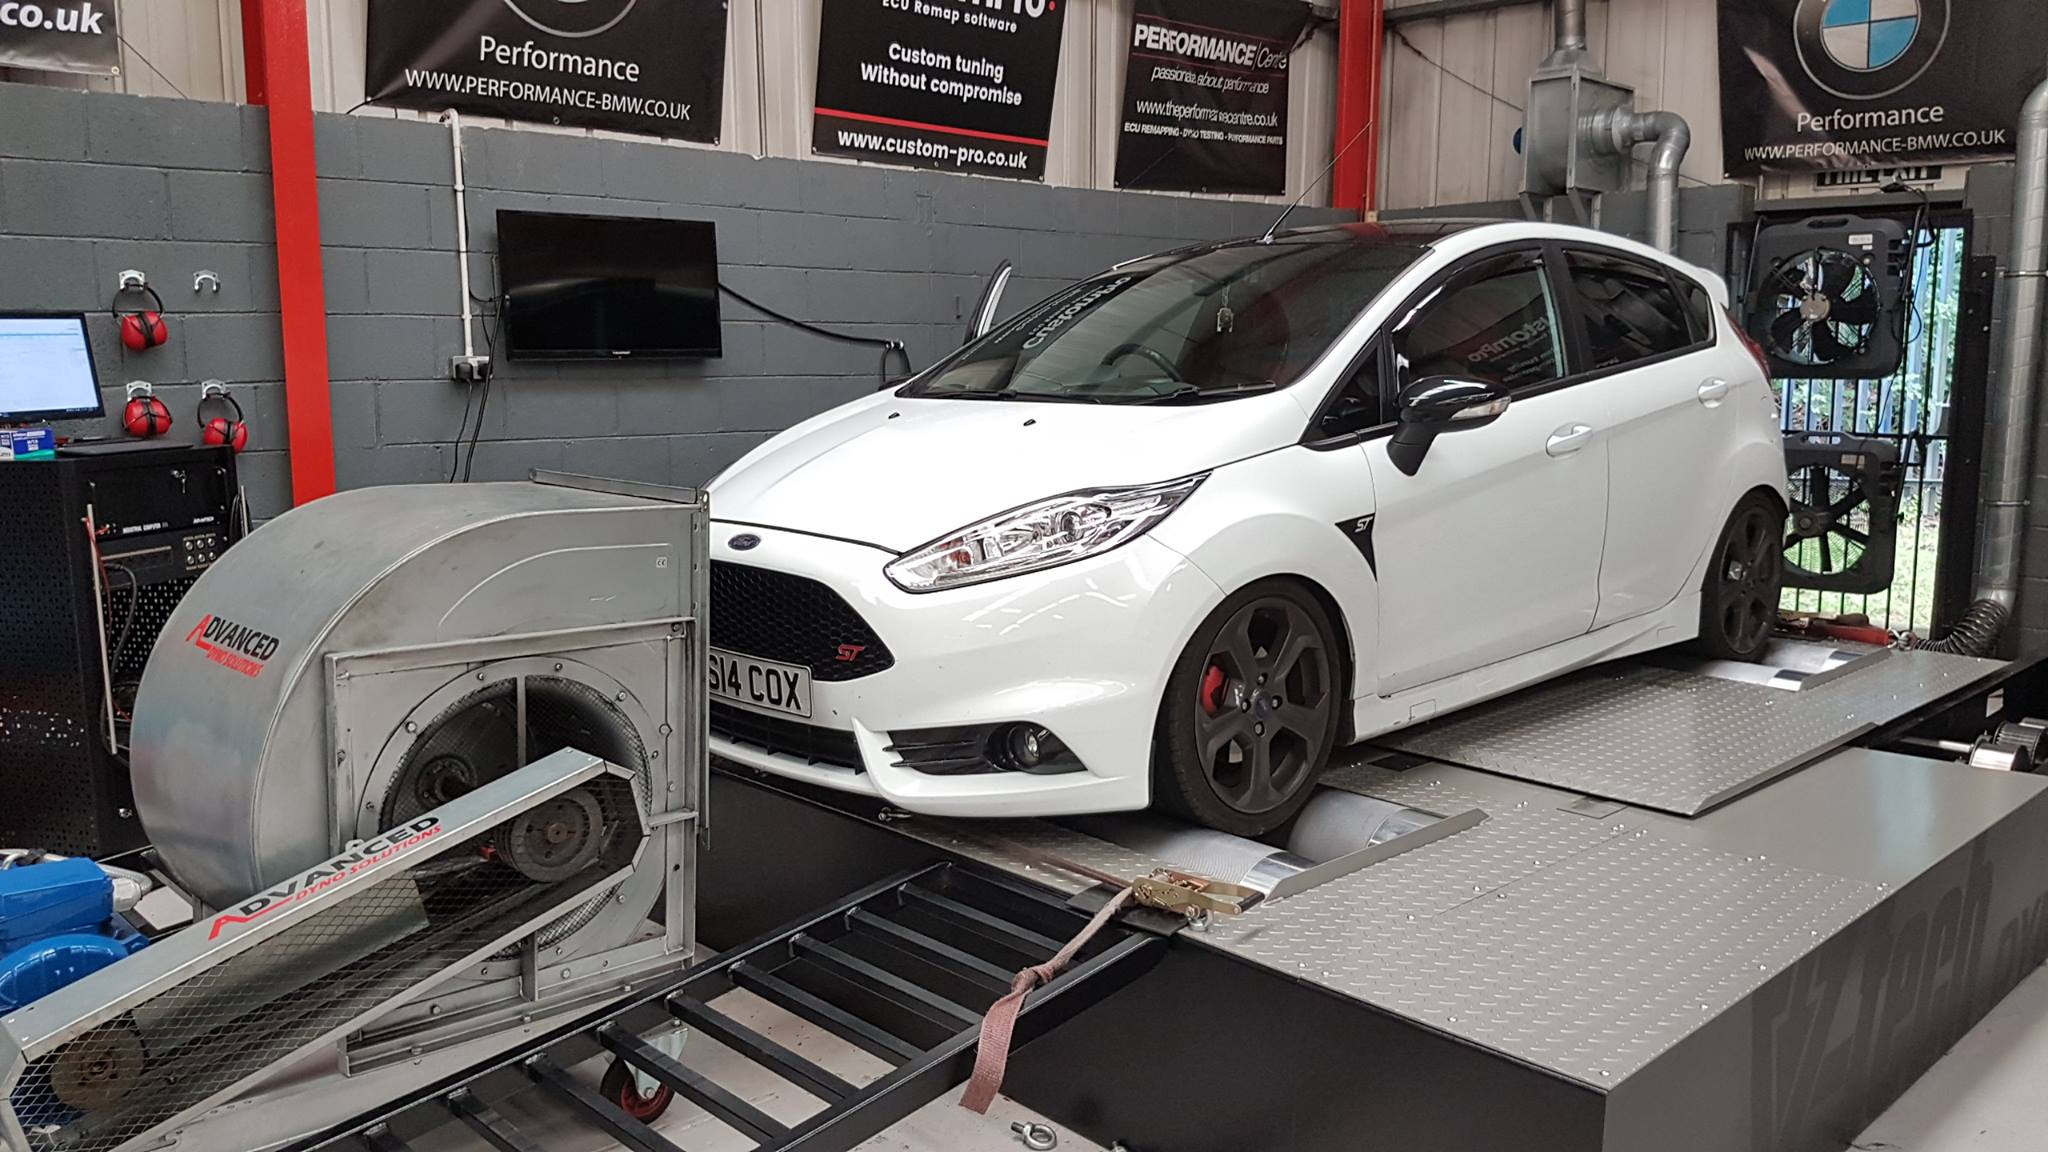 Ford Fiesta 1.0 EcoBoost - CustomPro remap